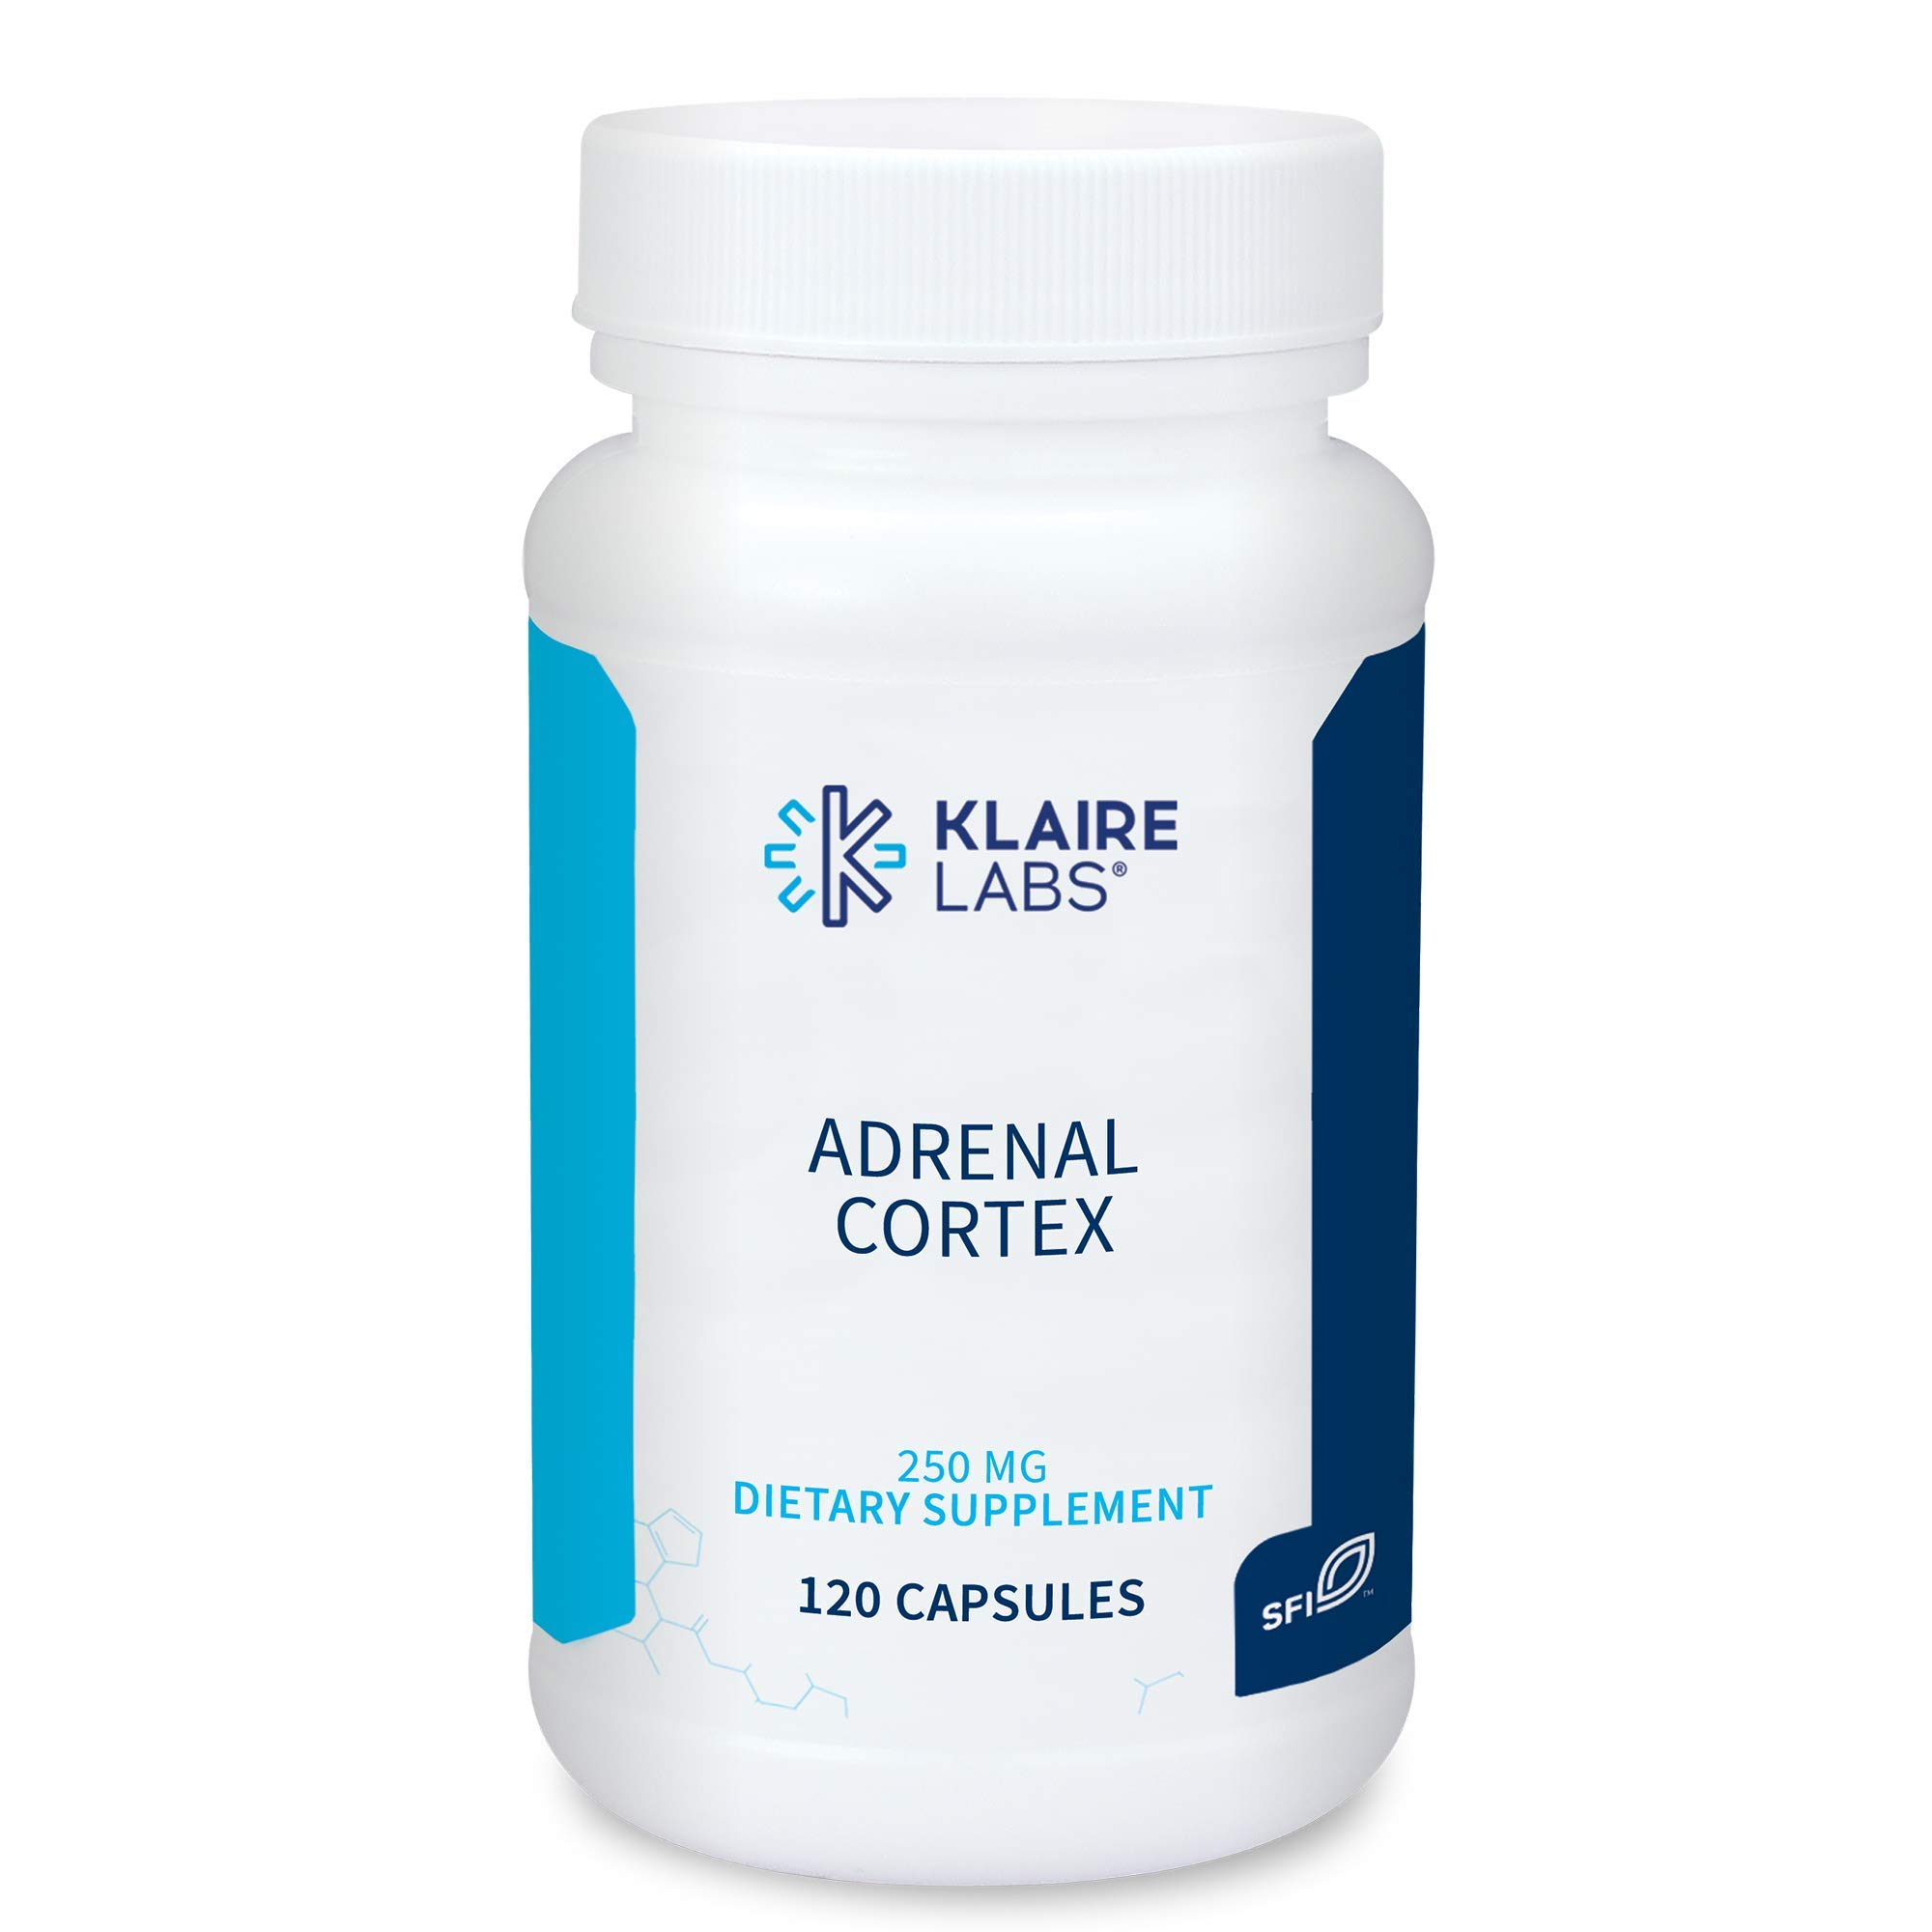 Klaire Labs Adrenal Cortex 250 mg - Adrenal Support Supplements for Cortisol Management Support - Help Support Healthy Adrenal Function for Women & Men - Gluten-Free, Hypoallergenic (120 Capsules)